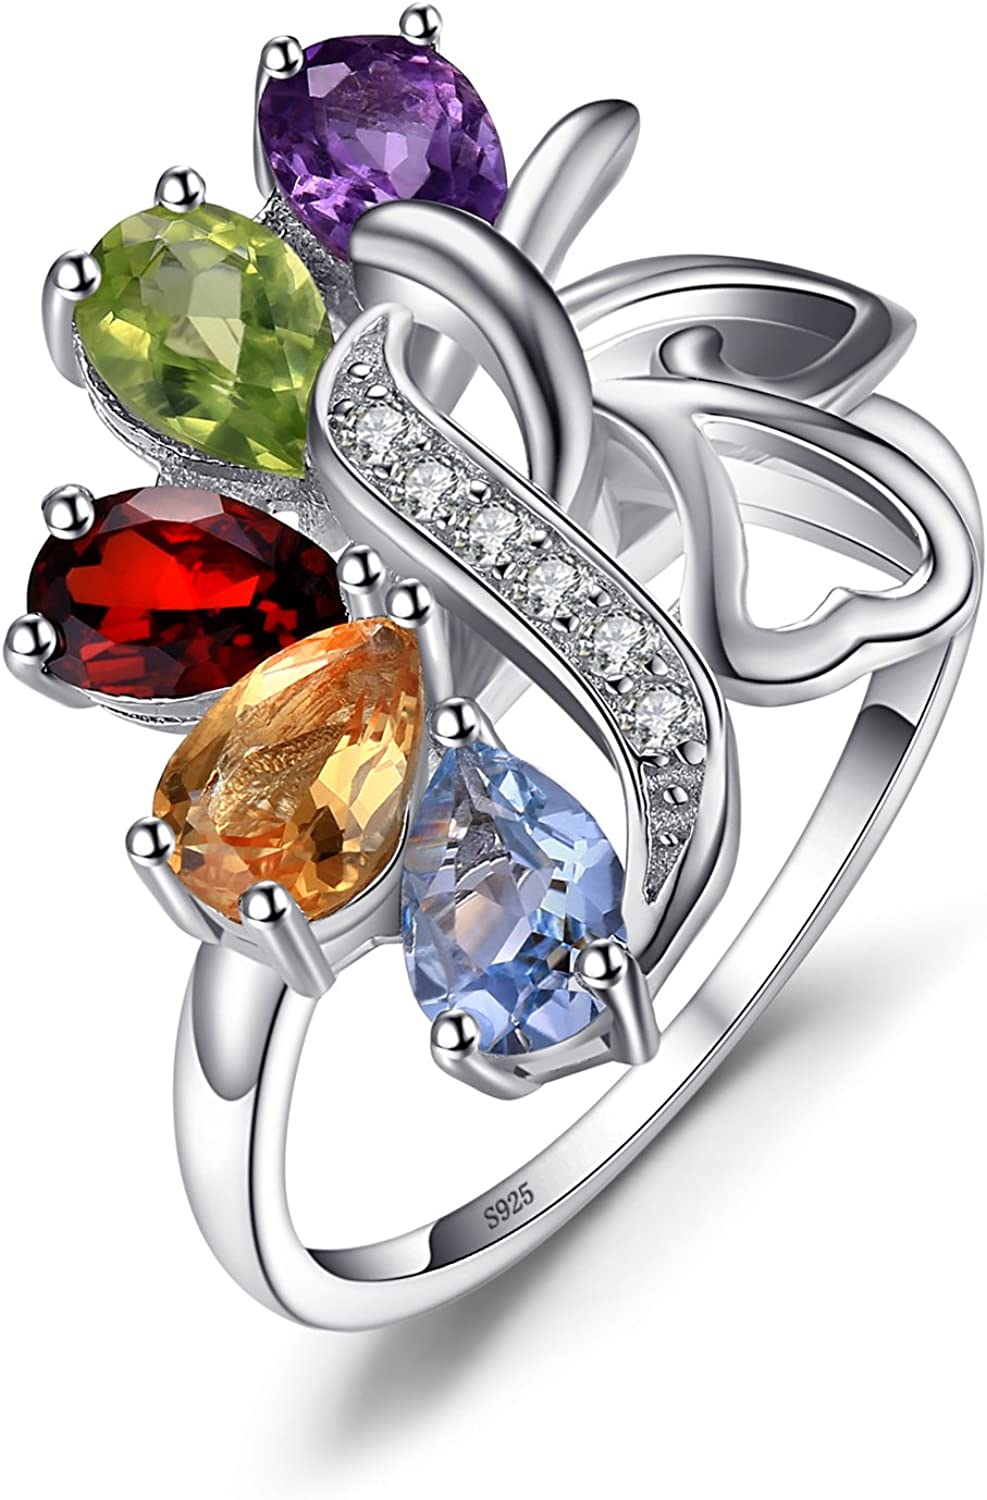 JewelryPalace Anillo multicolor con cinco gemas en Plata de ley 925